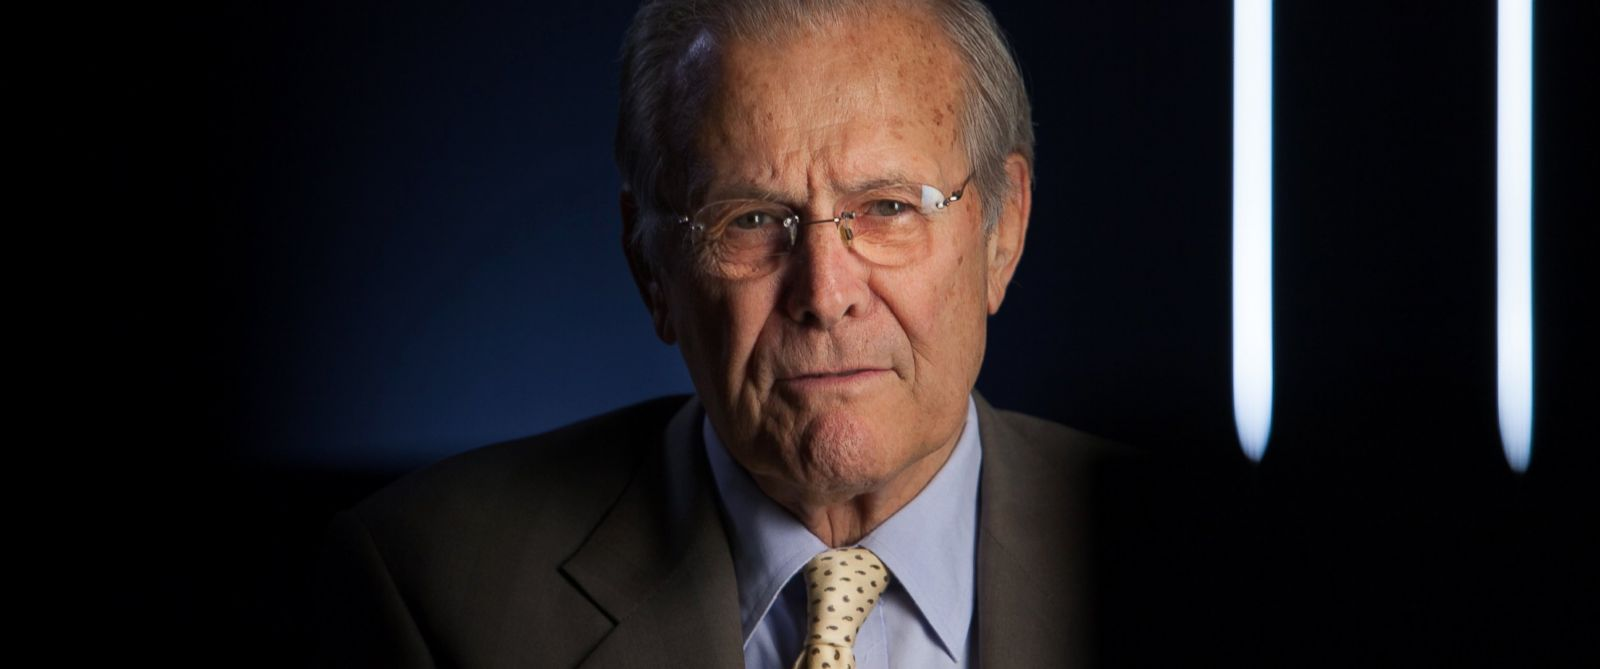 """PHOTO:Former Secretary of Defense Donald Rumsfeld being interviewed for the documentary, """"The Presidents Gatekeepers,"""" May 17, 2012 in Washington."""